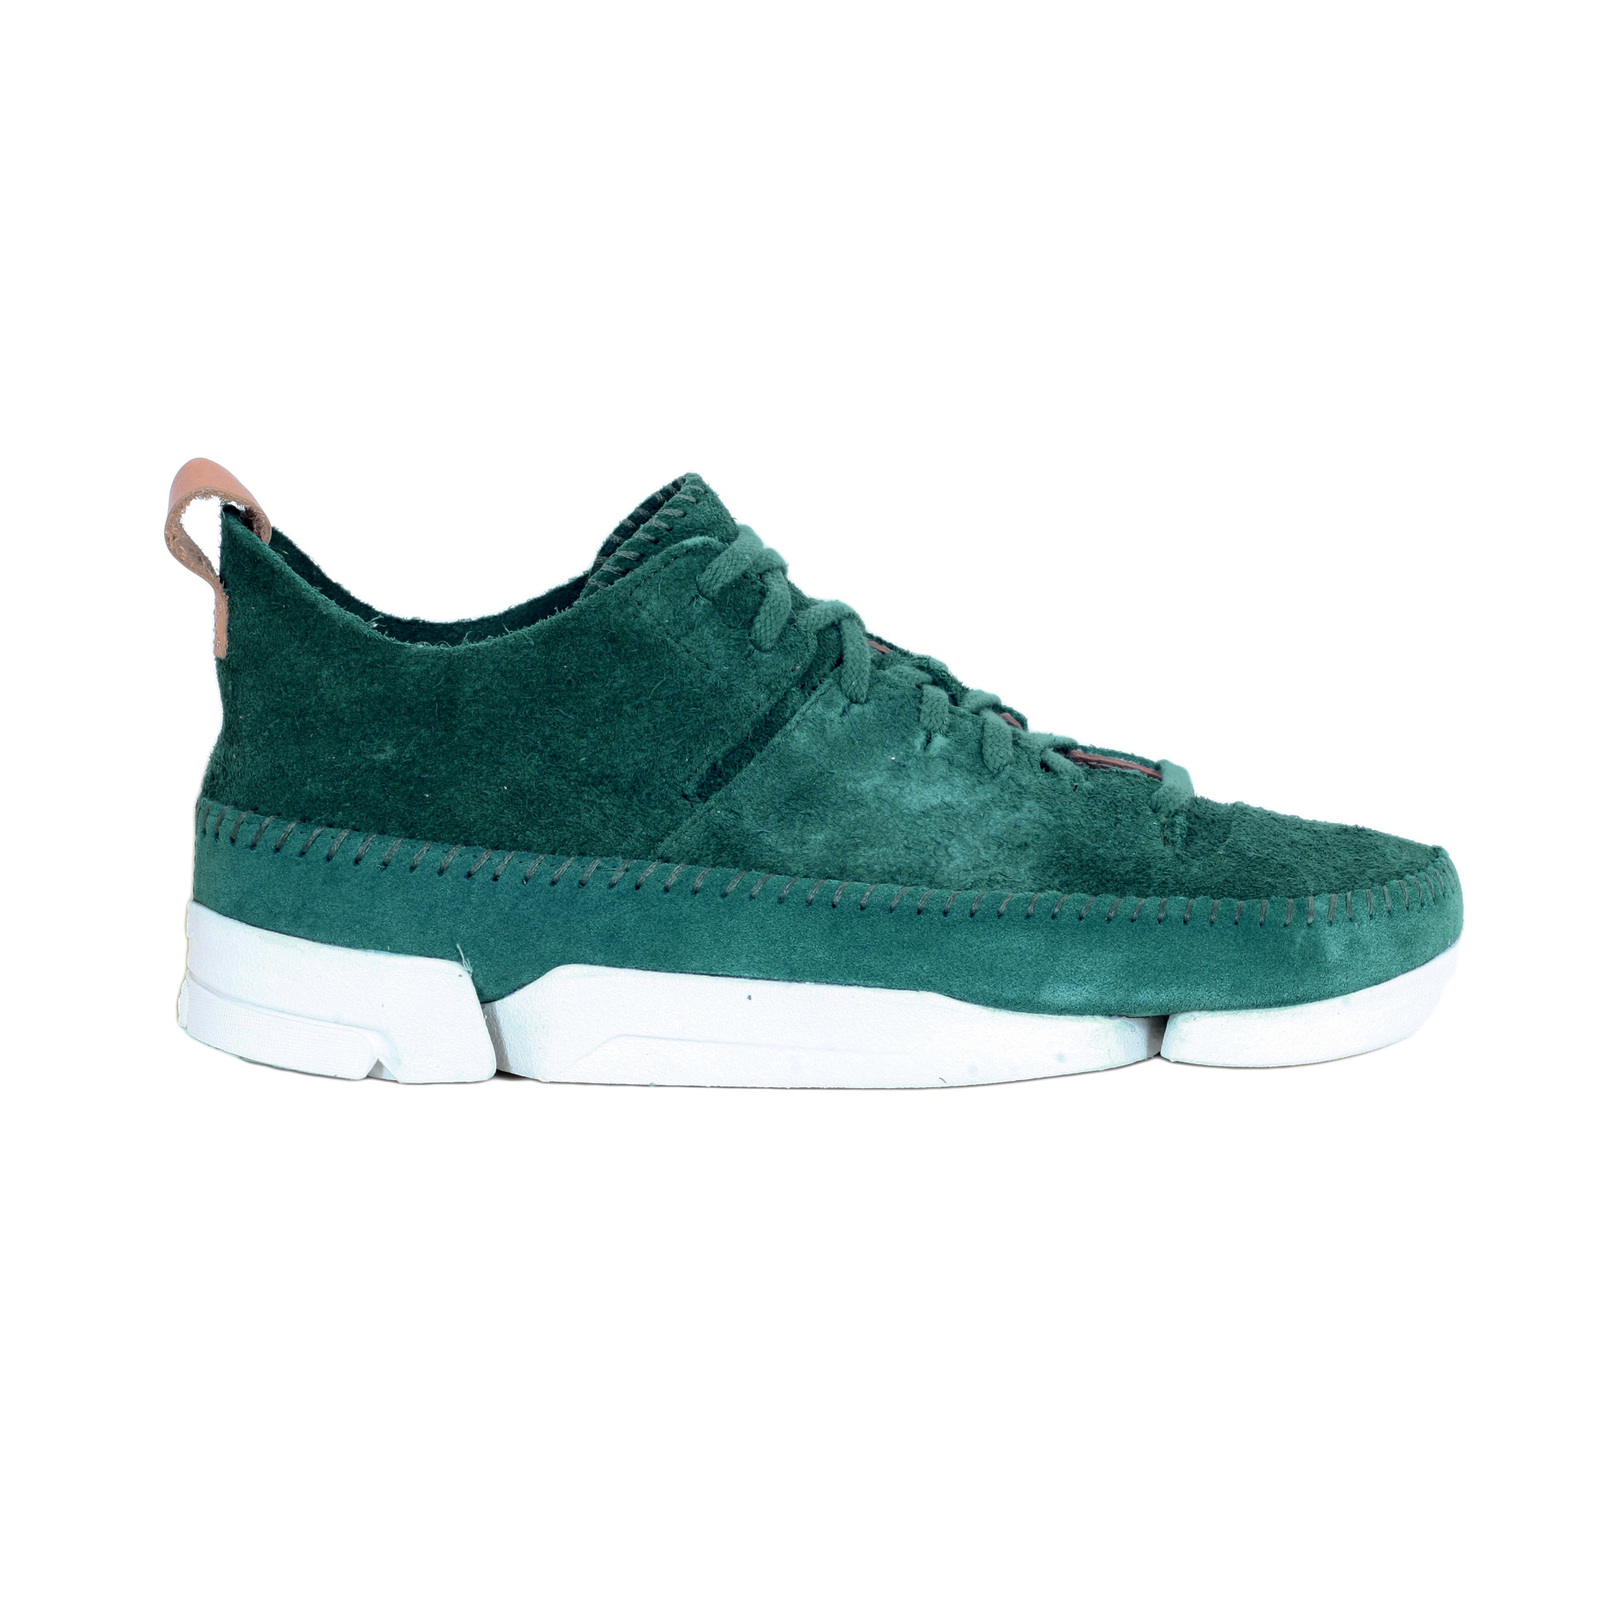 bcbaeecaa Mens Suede Shoes in Teal with the Trigenic Technology